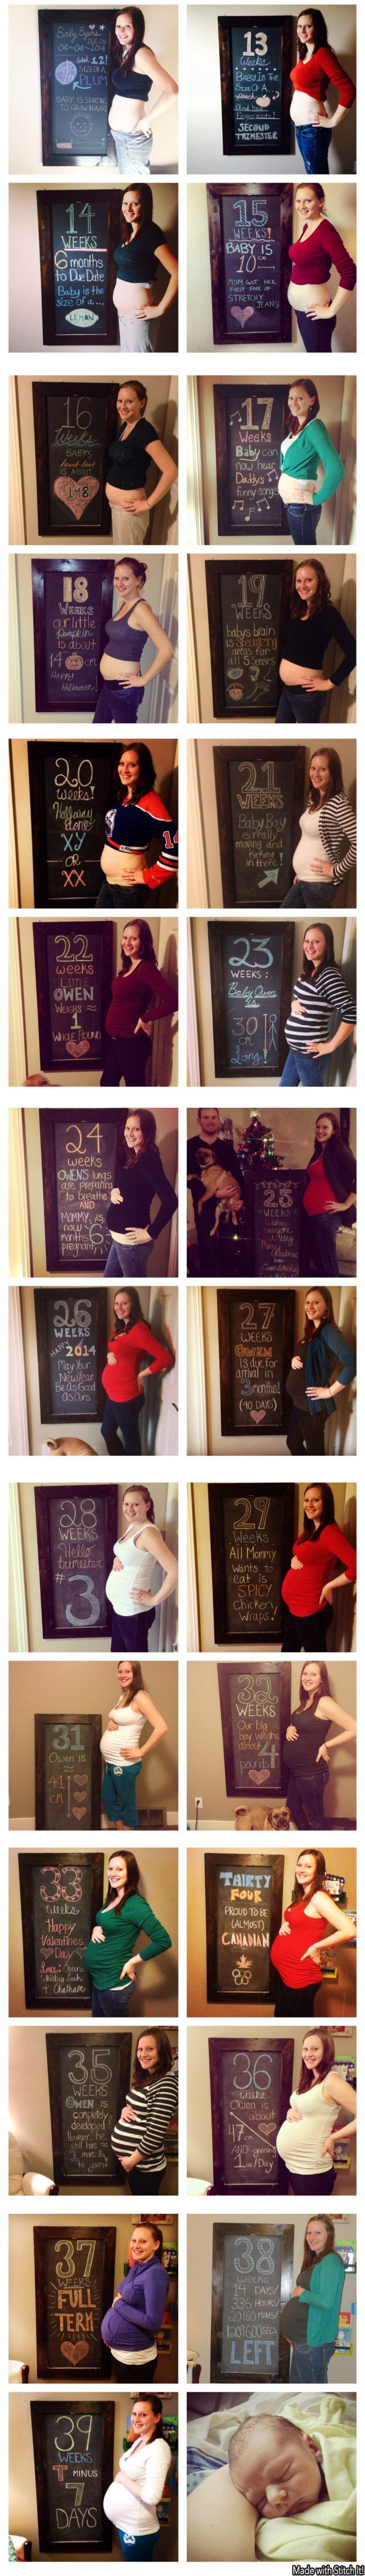 Weekly pregnancy updates.  Chalkboard updates  Week 12-40